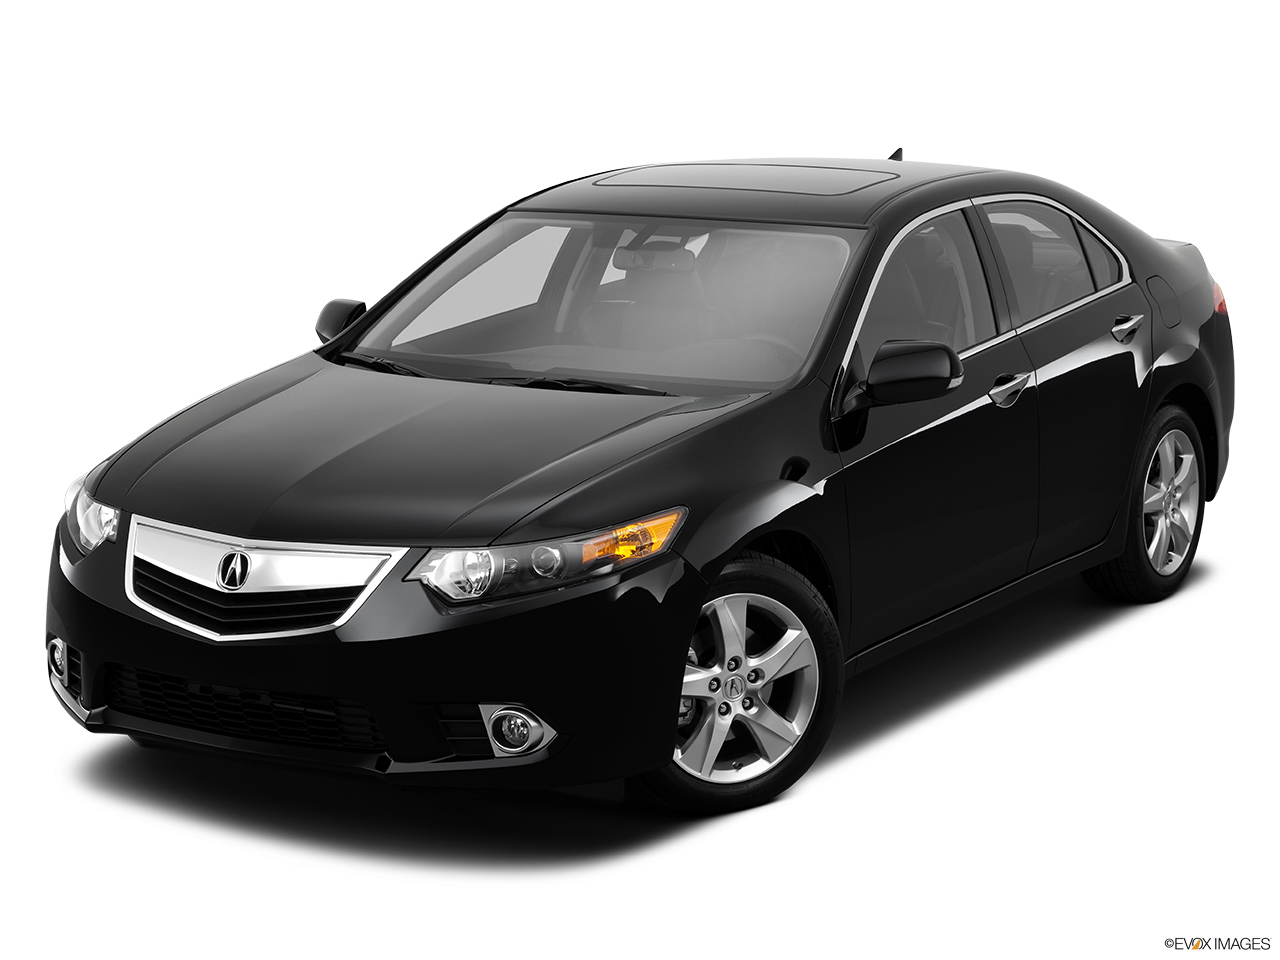 2014 acura tsx sedan i4 manual special edition front angle view